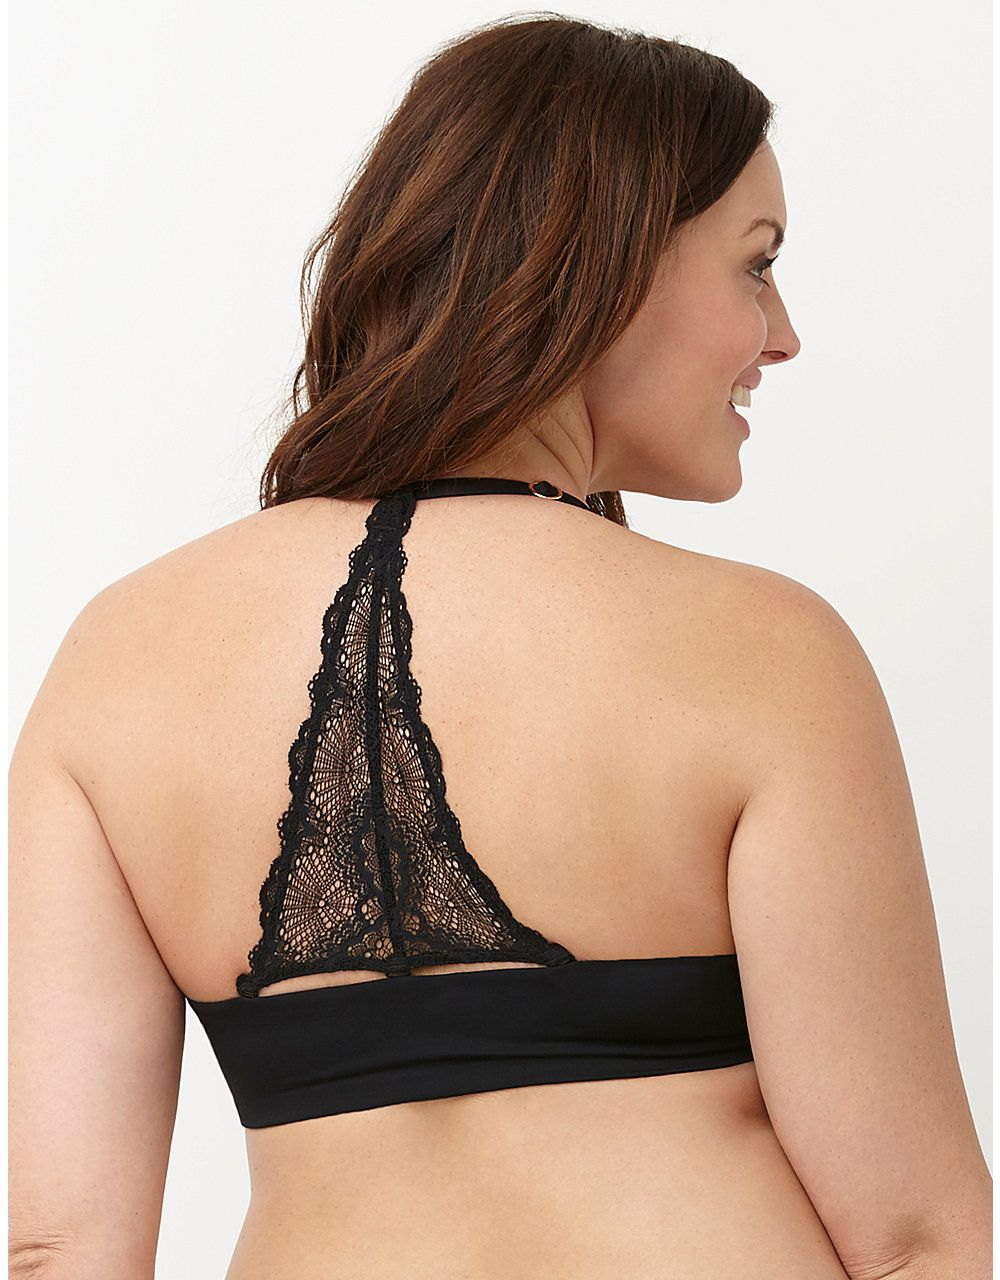 d7270cf29f31 Convertible back plunge bra by Cacique | Lane Bryant | Underpinnings ...